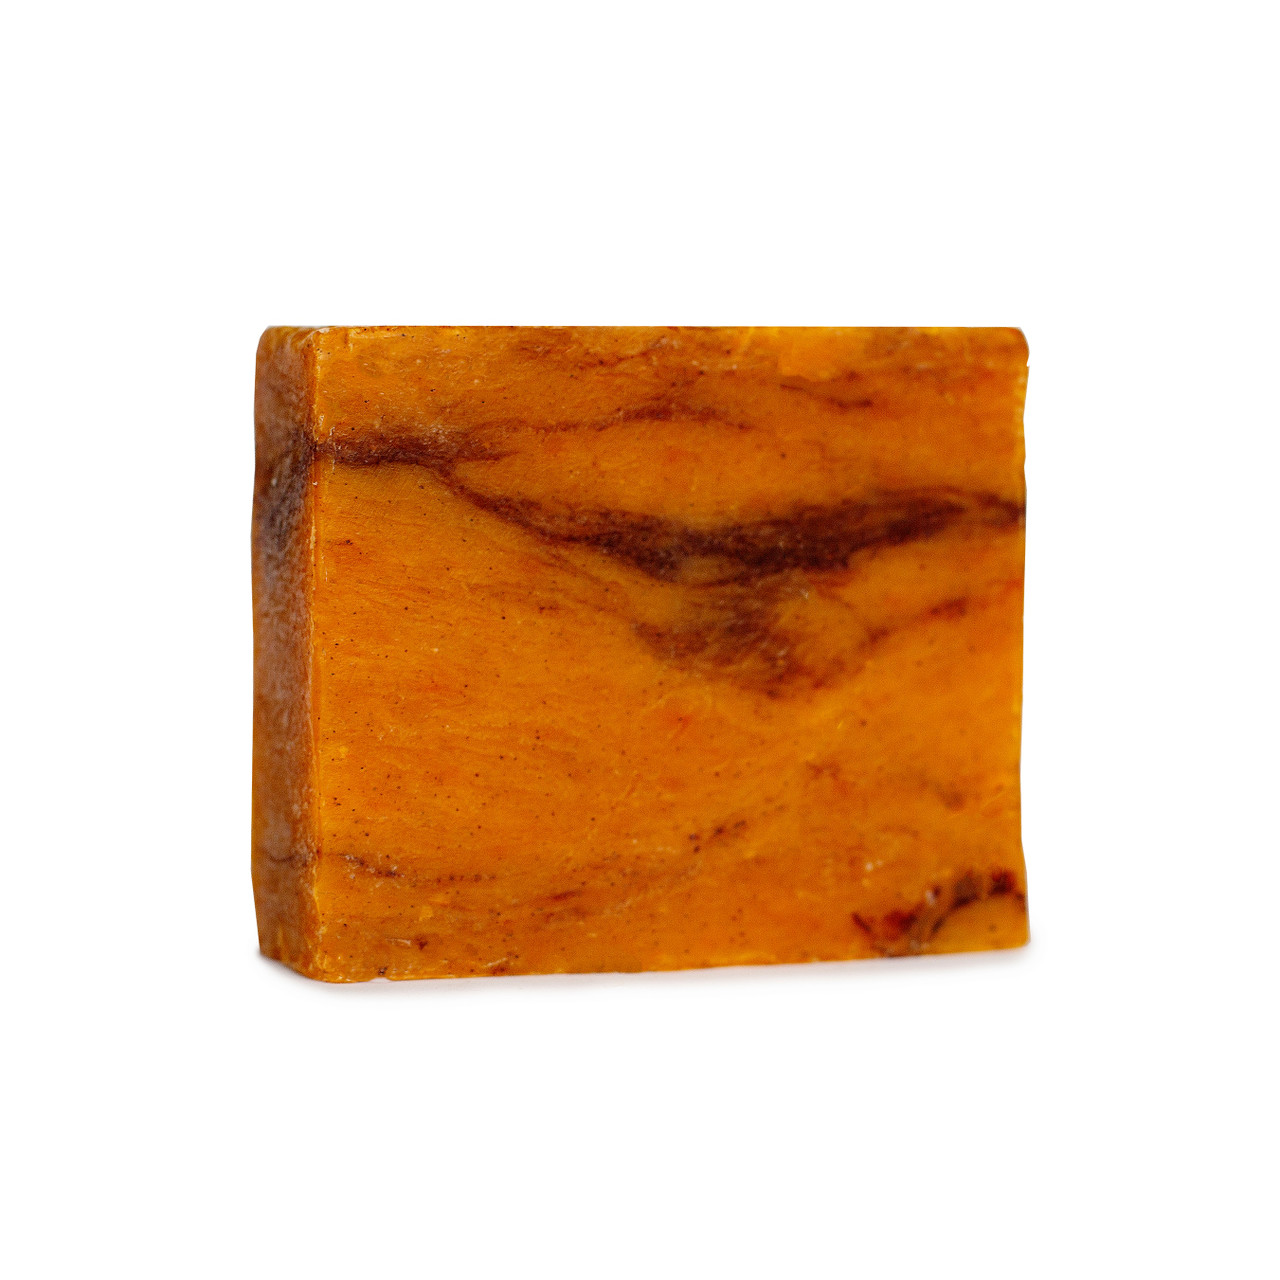 Appalachian Soap